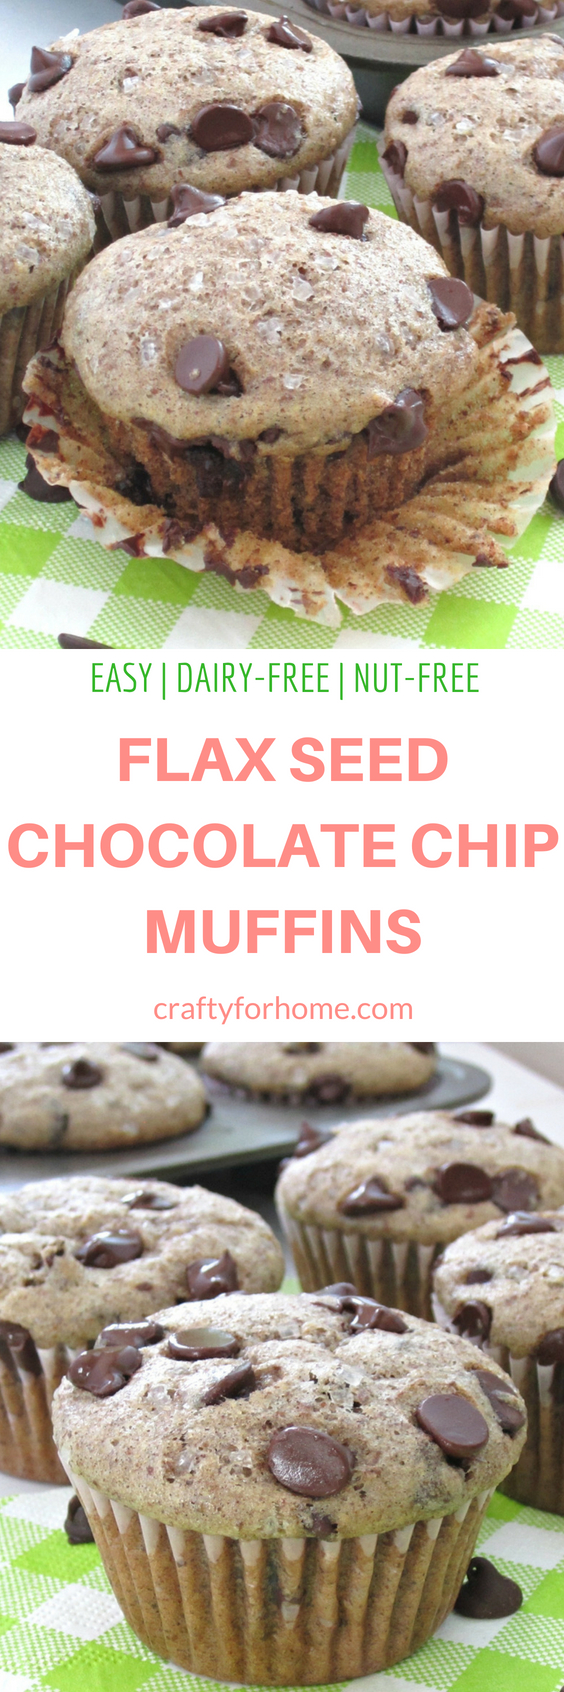 Easy chocolate chip muffins without egg. Use the milled flax seed to substitute the egg. #dairyfreemuffins #nutfreemuffins #flaxseedmuffins for full recipe on craftyforhome.com